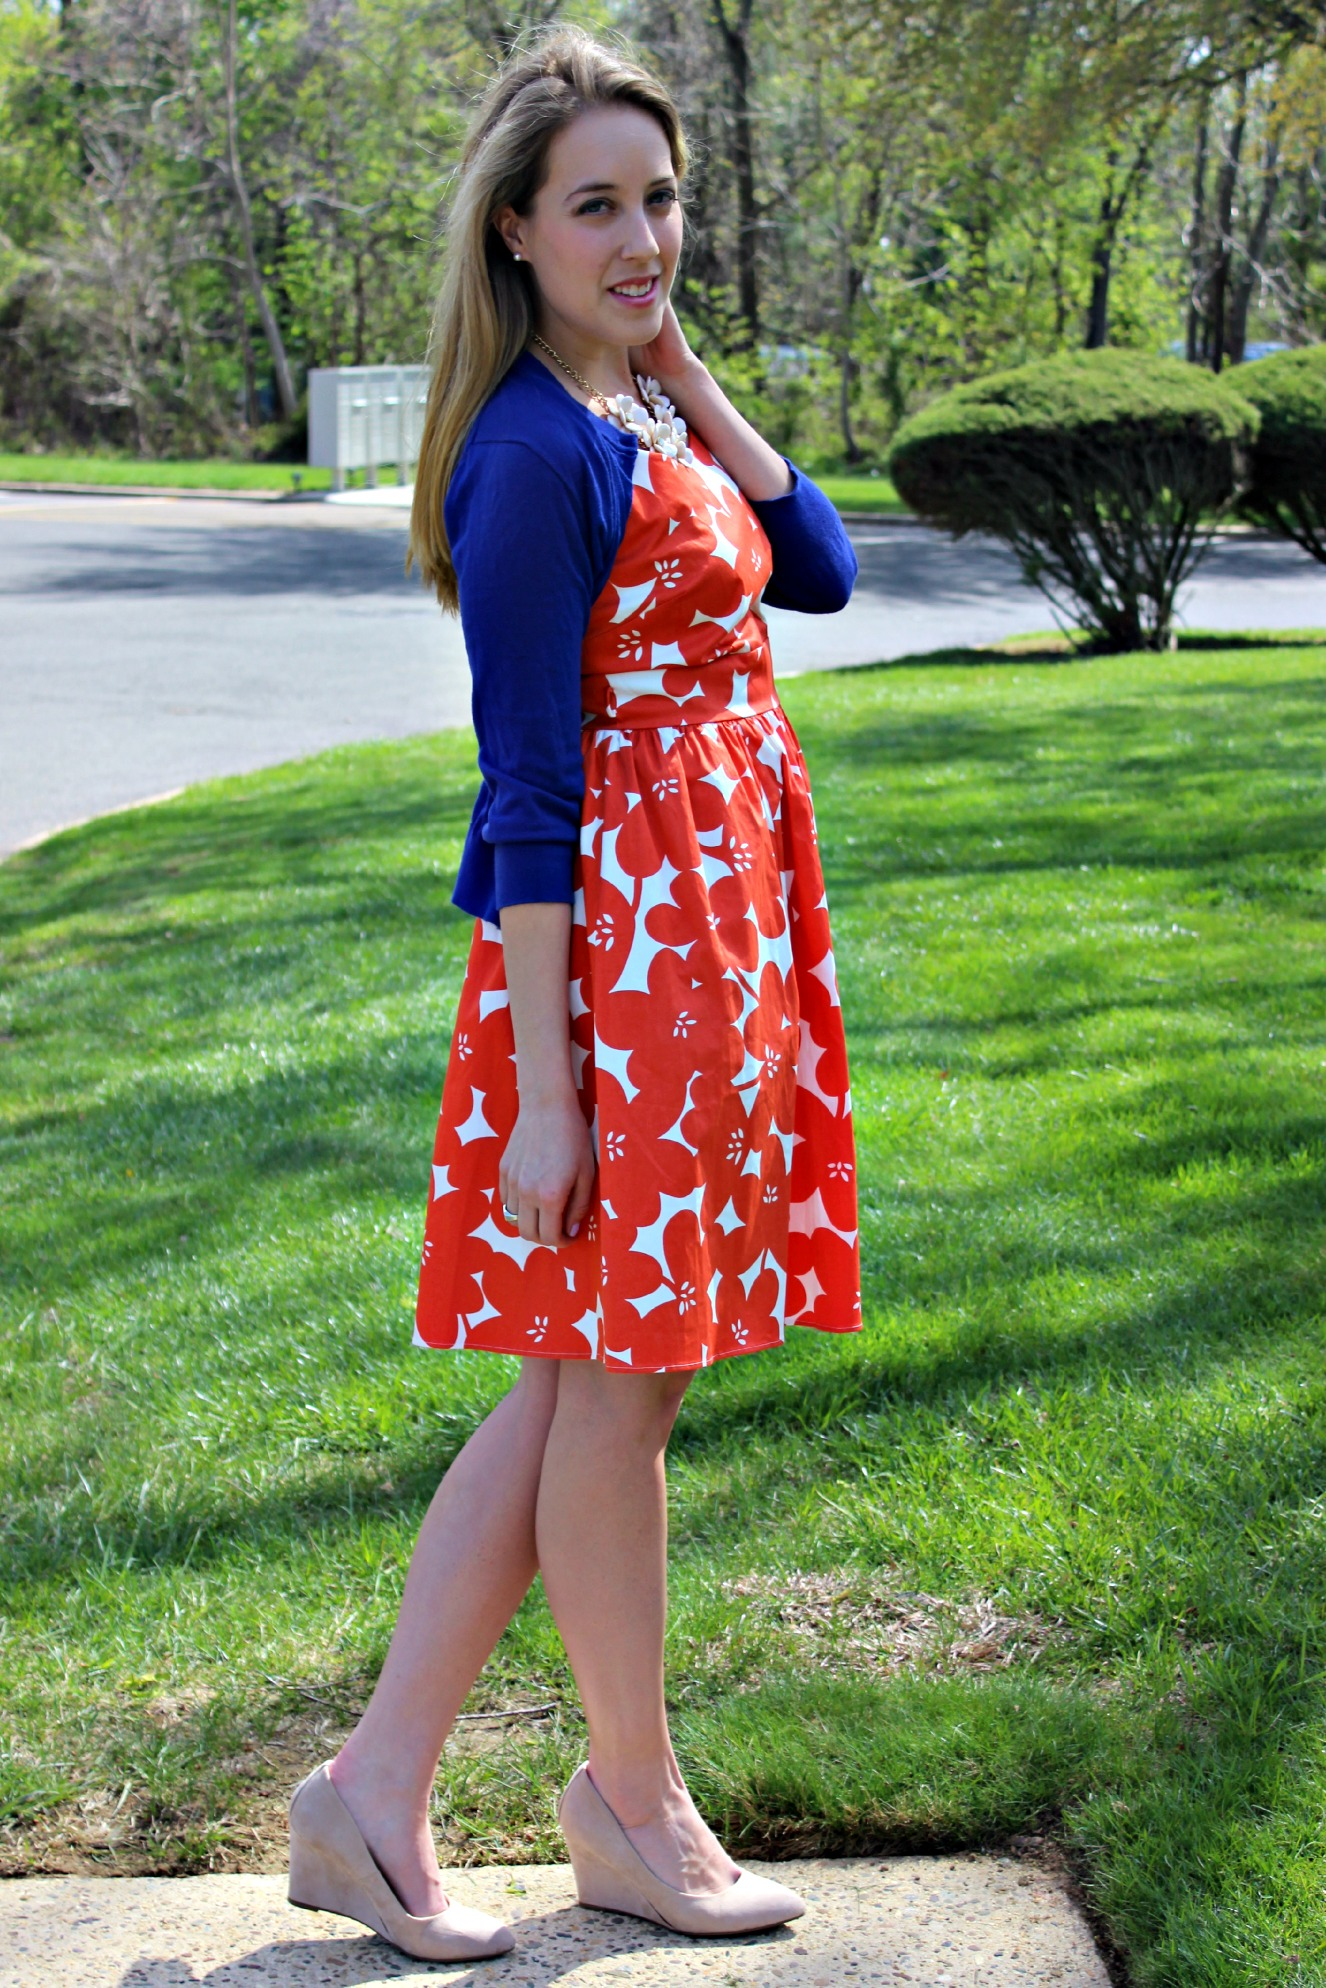 Wearing: May Flowers